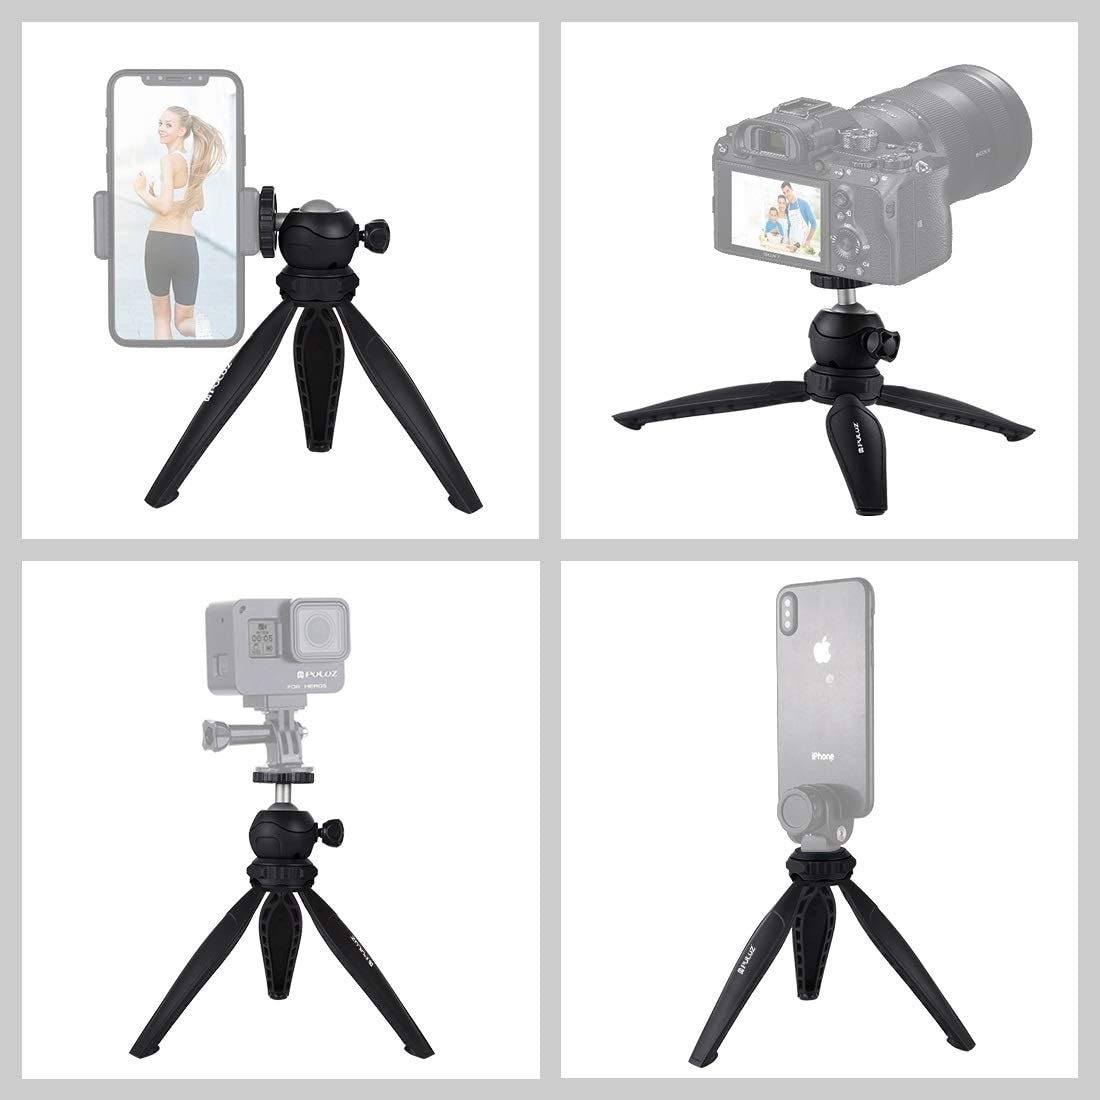 MEETBM ZIMO,20cm Pocket Plastic Tripod Mount with 360 Degree Ball Head for Smartphones Color : Black Black GoPro DSLR Cameras